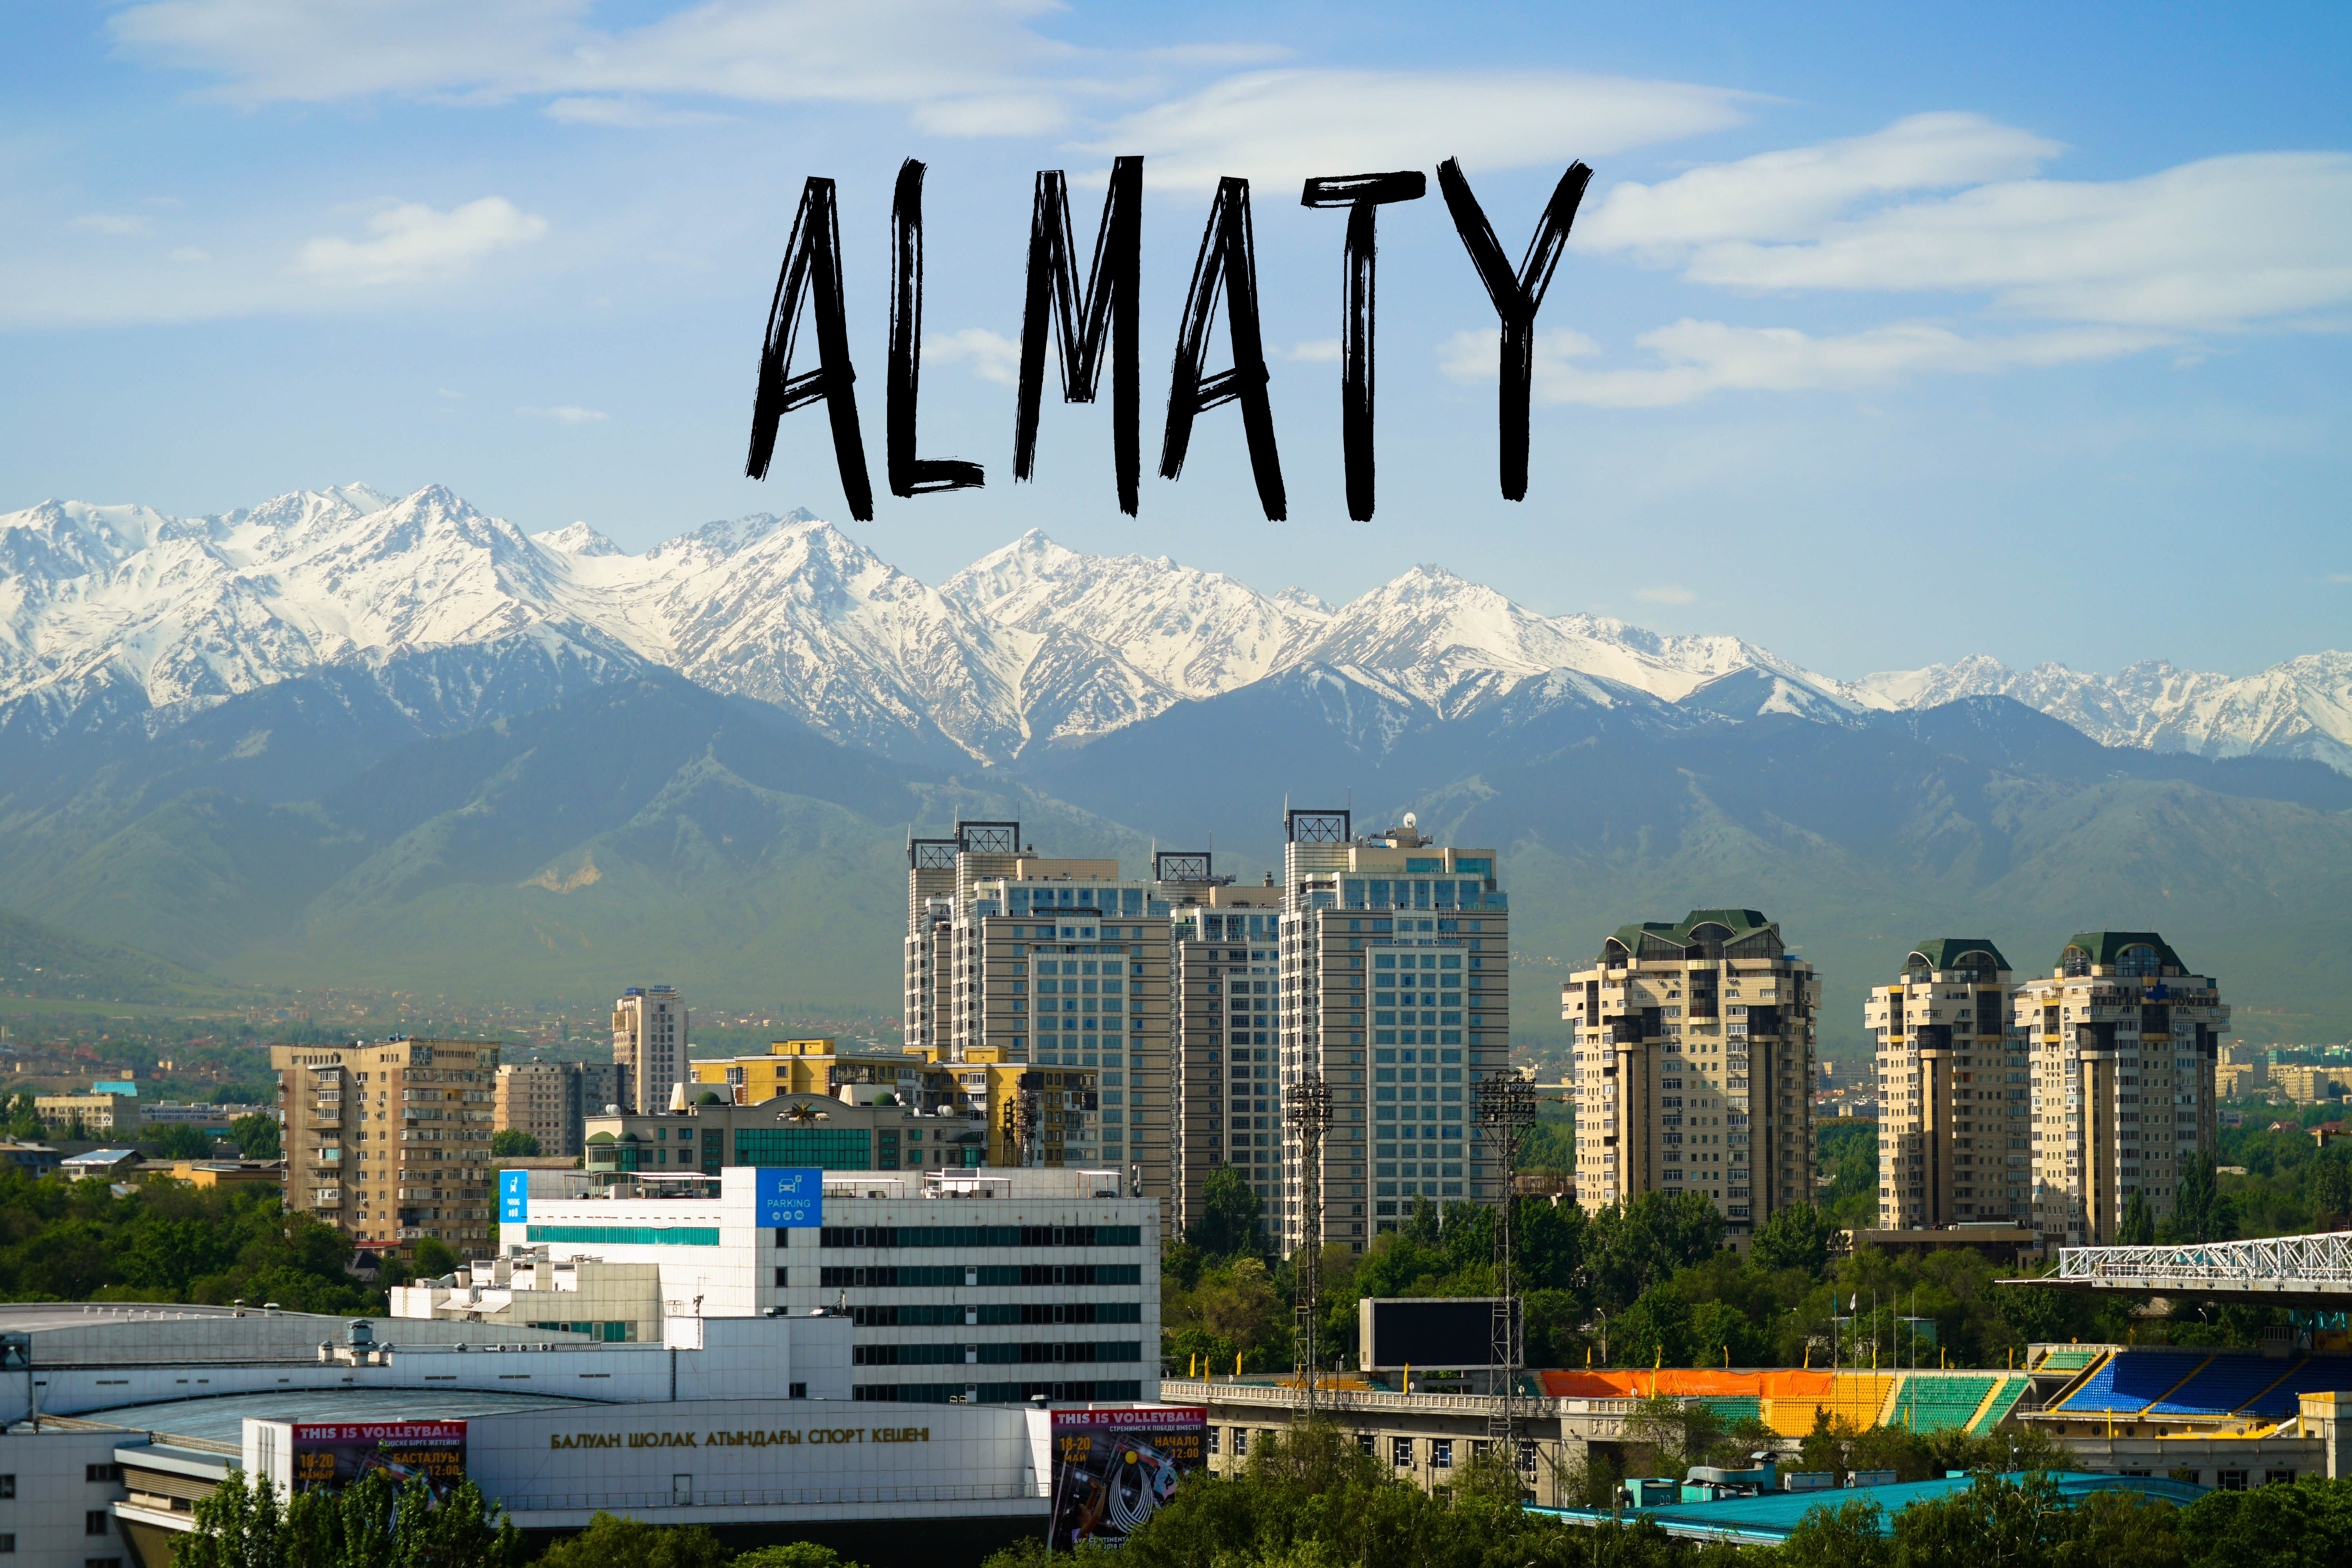 Almaty city view with text overlay Almaty